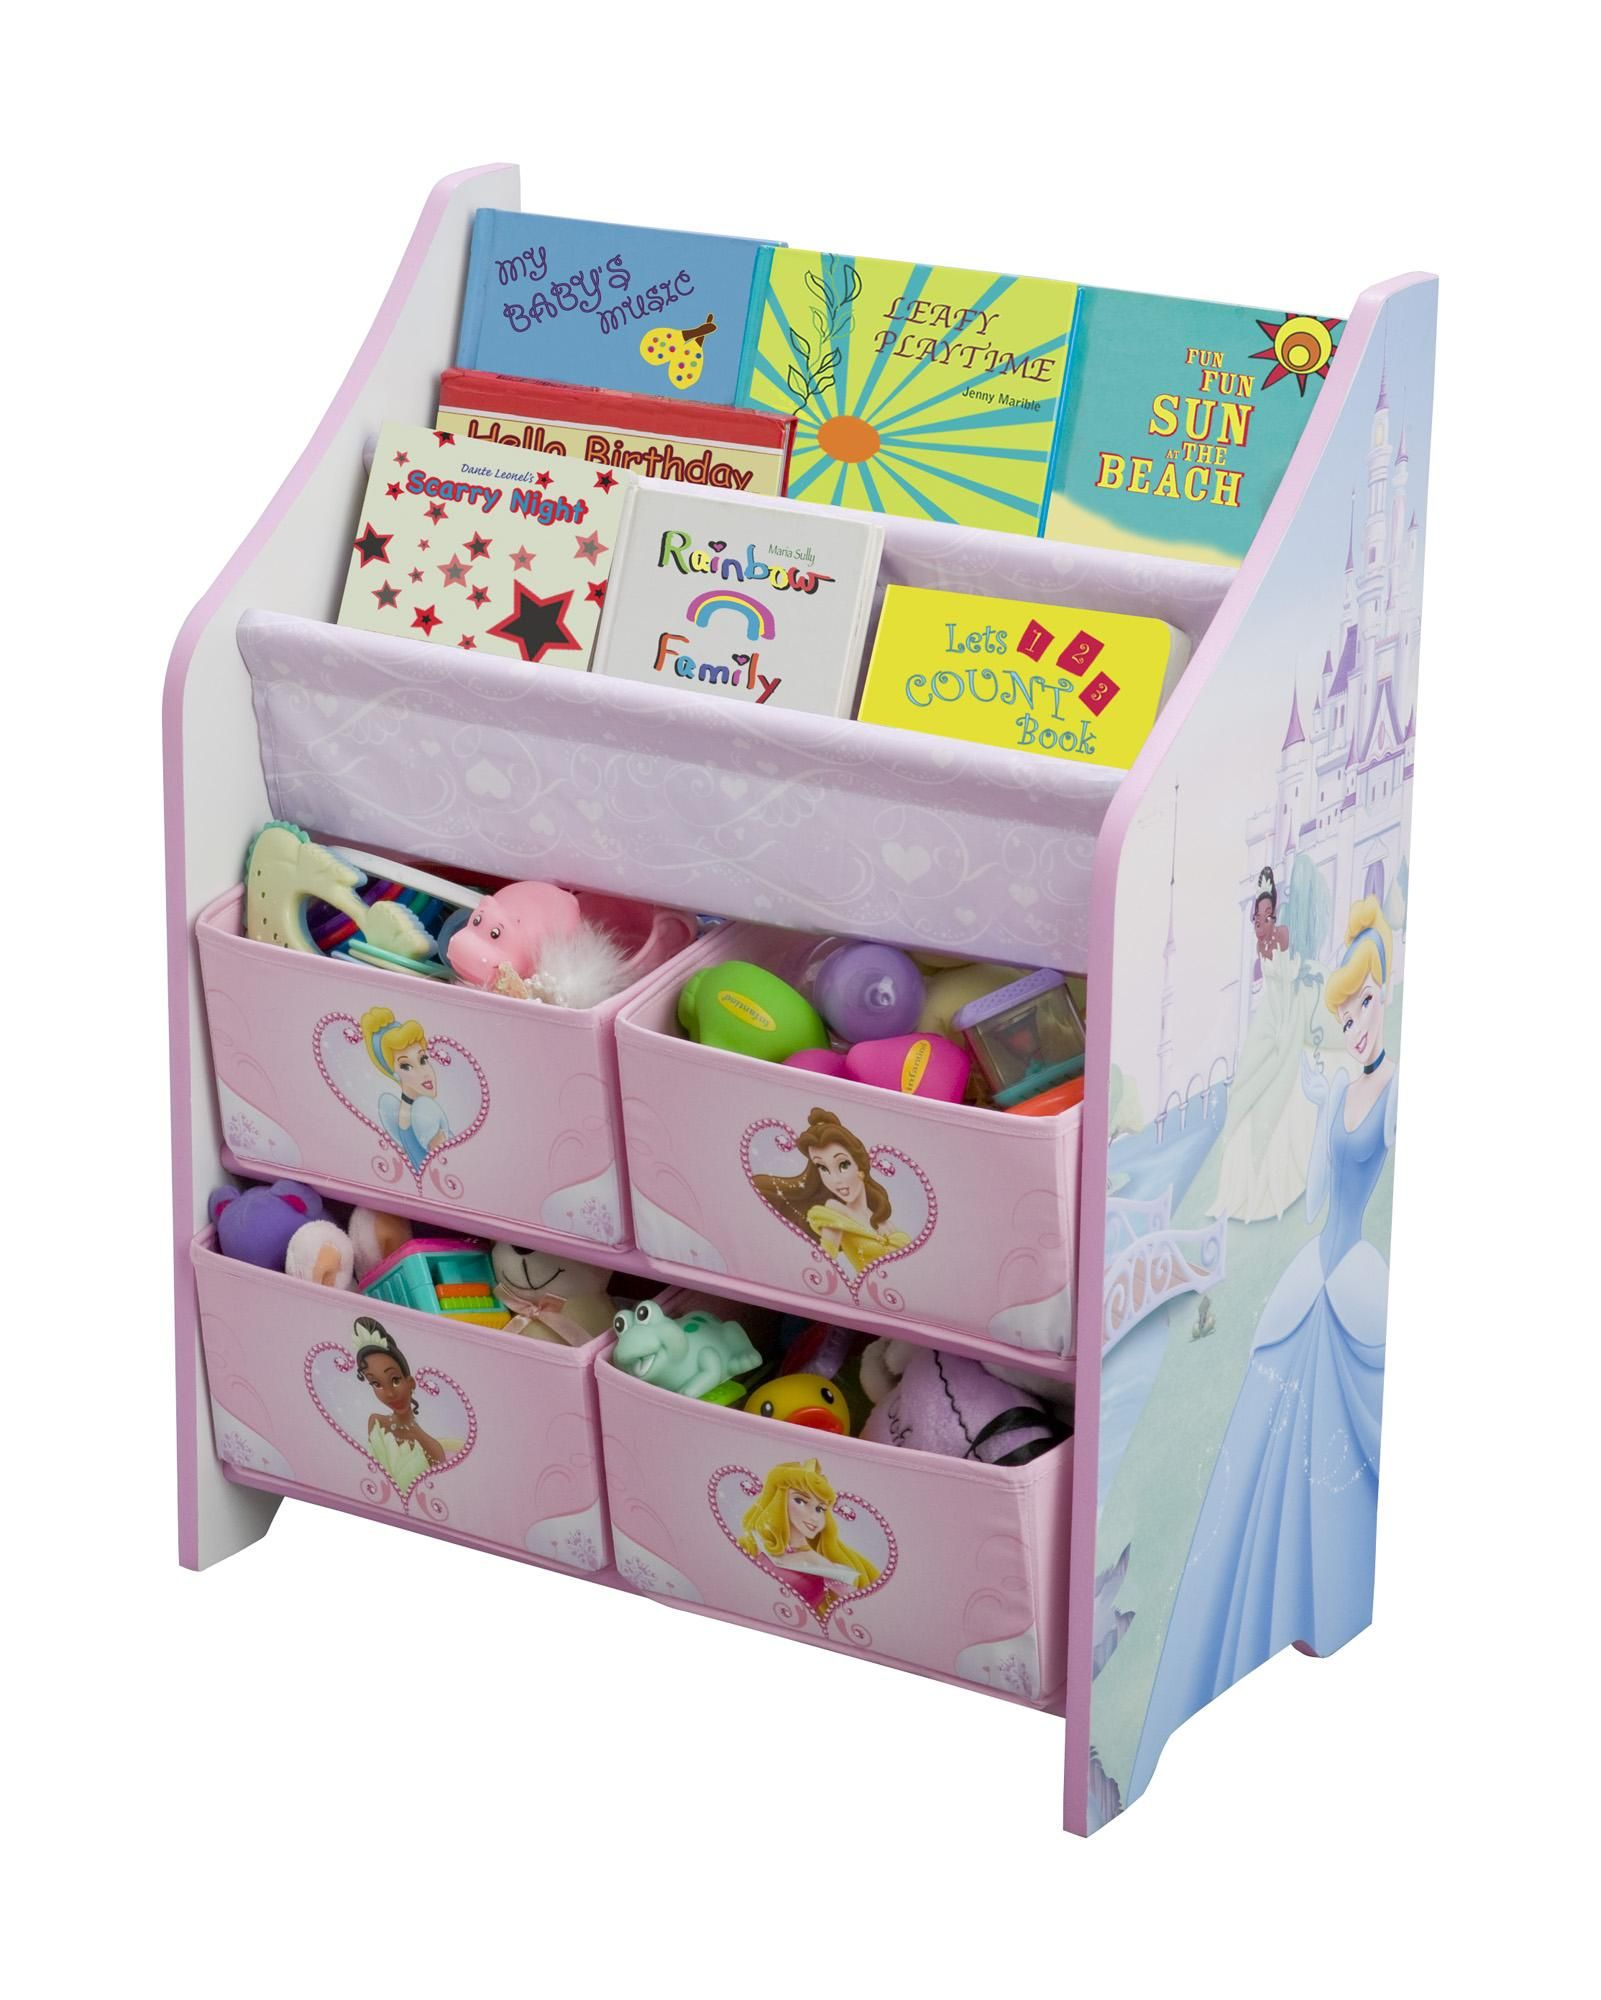 Disney Princess Book And Toy Organizer Toy Organization Disney Princess Books Kids Storage